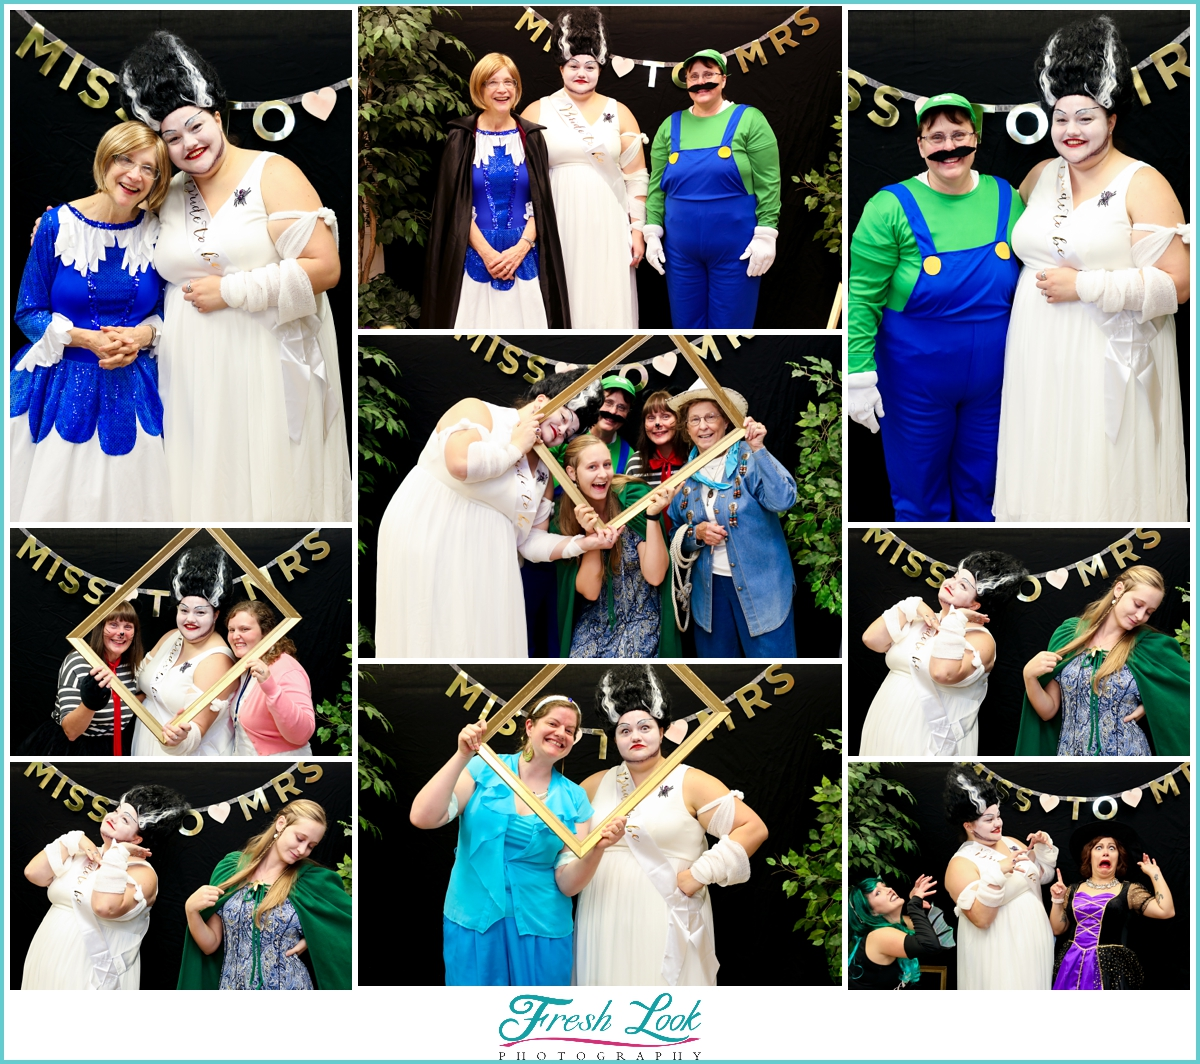 Photobooth fun at the reception